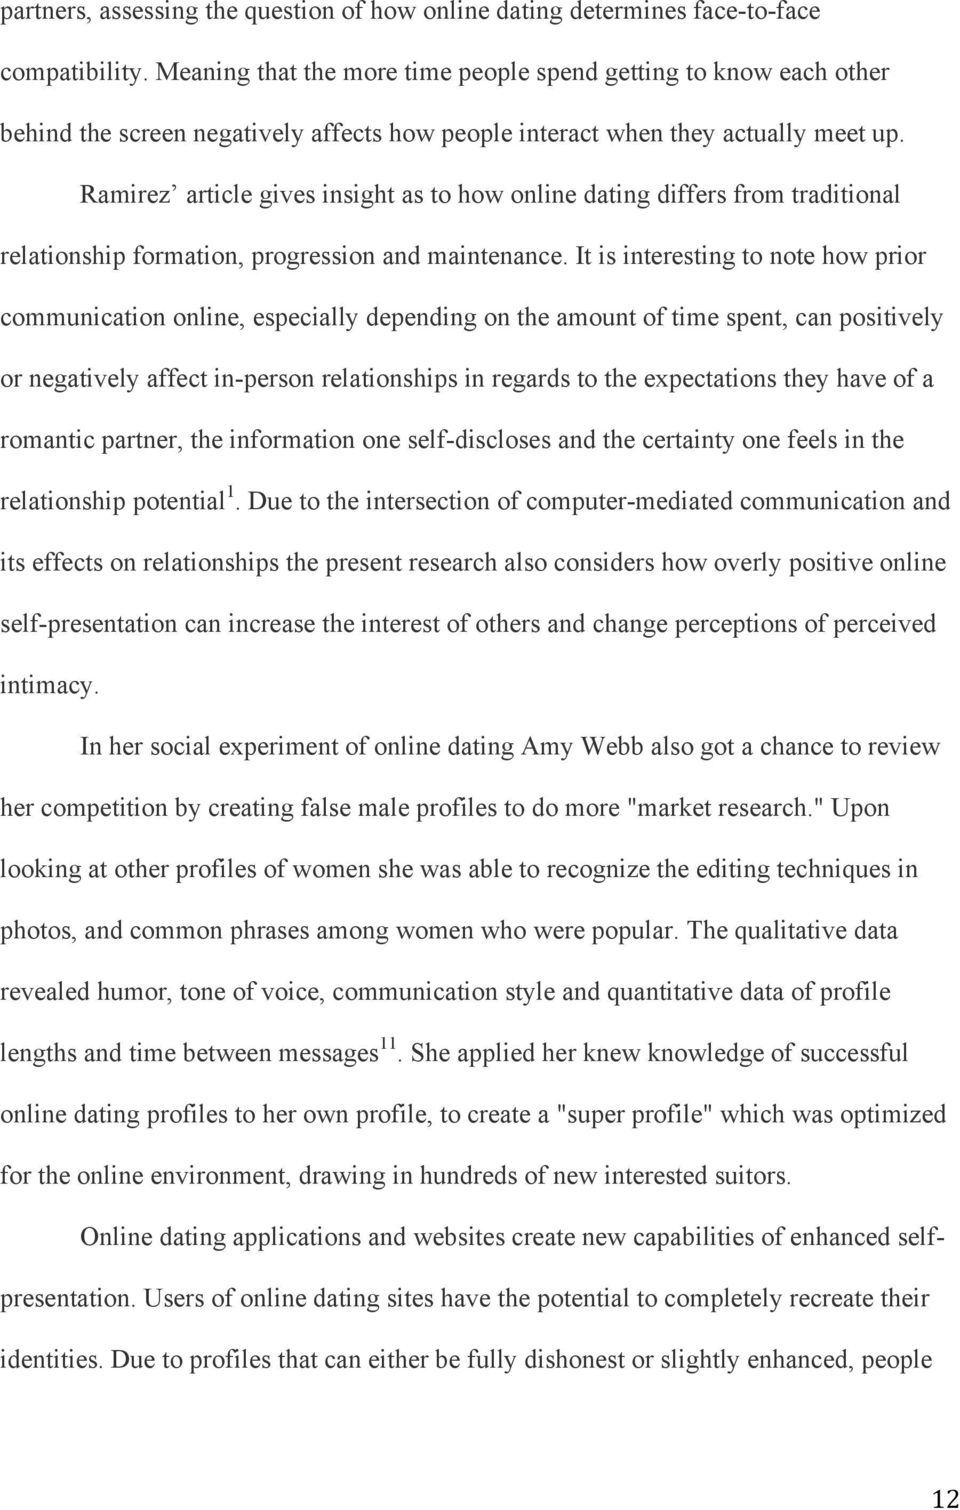 Recent articles on how online dating affects communication